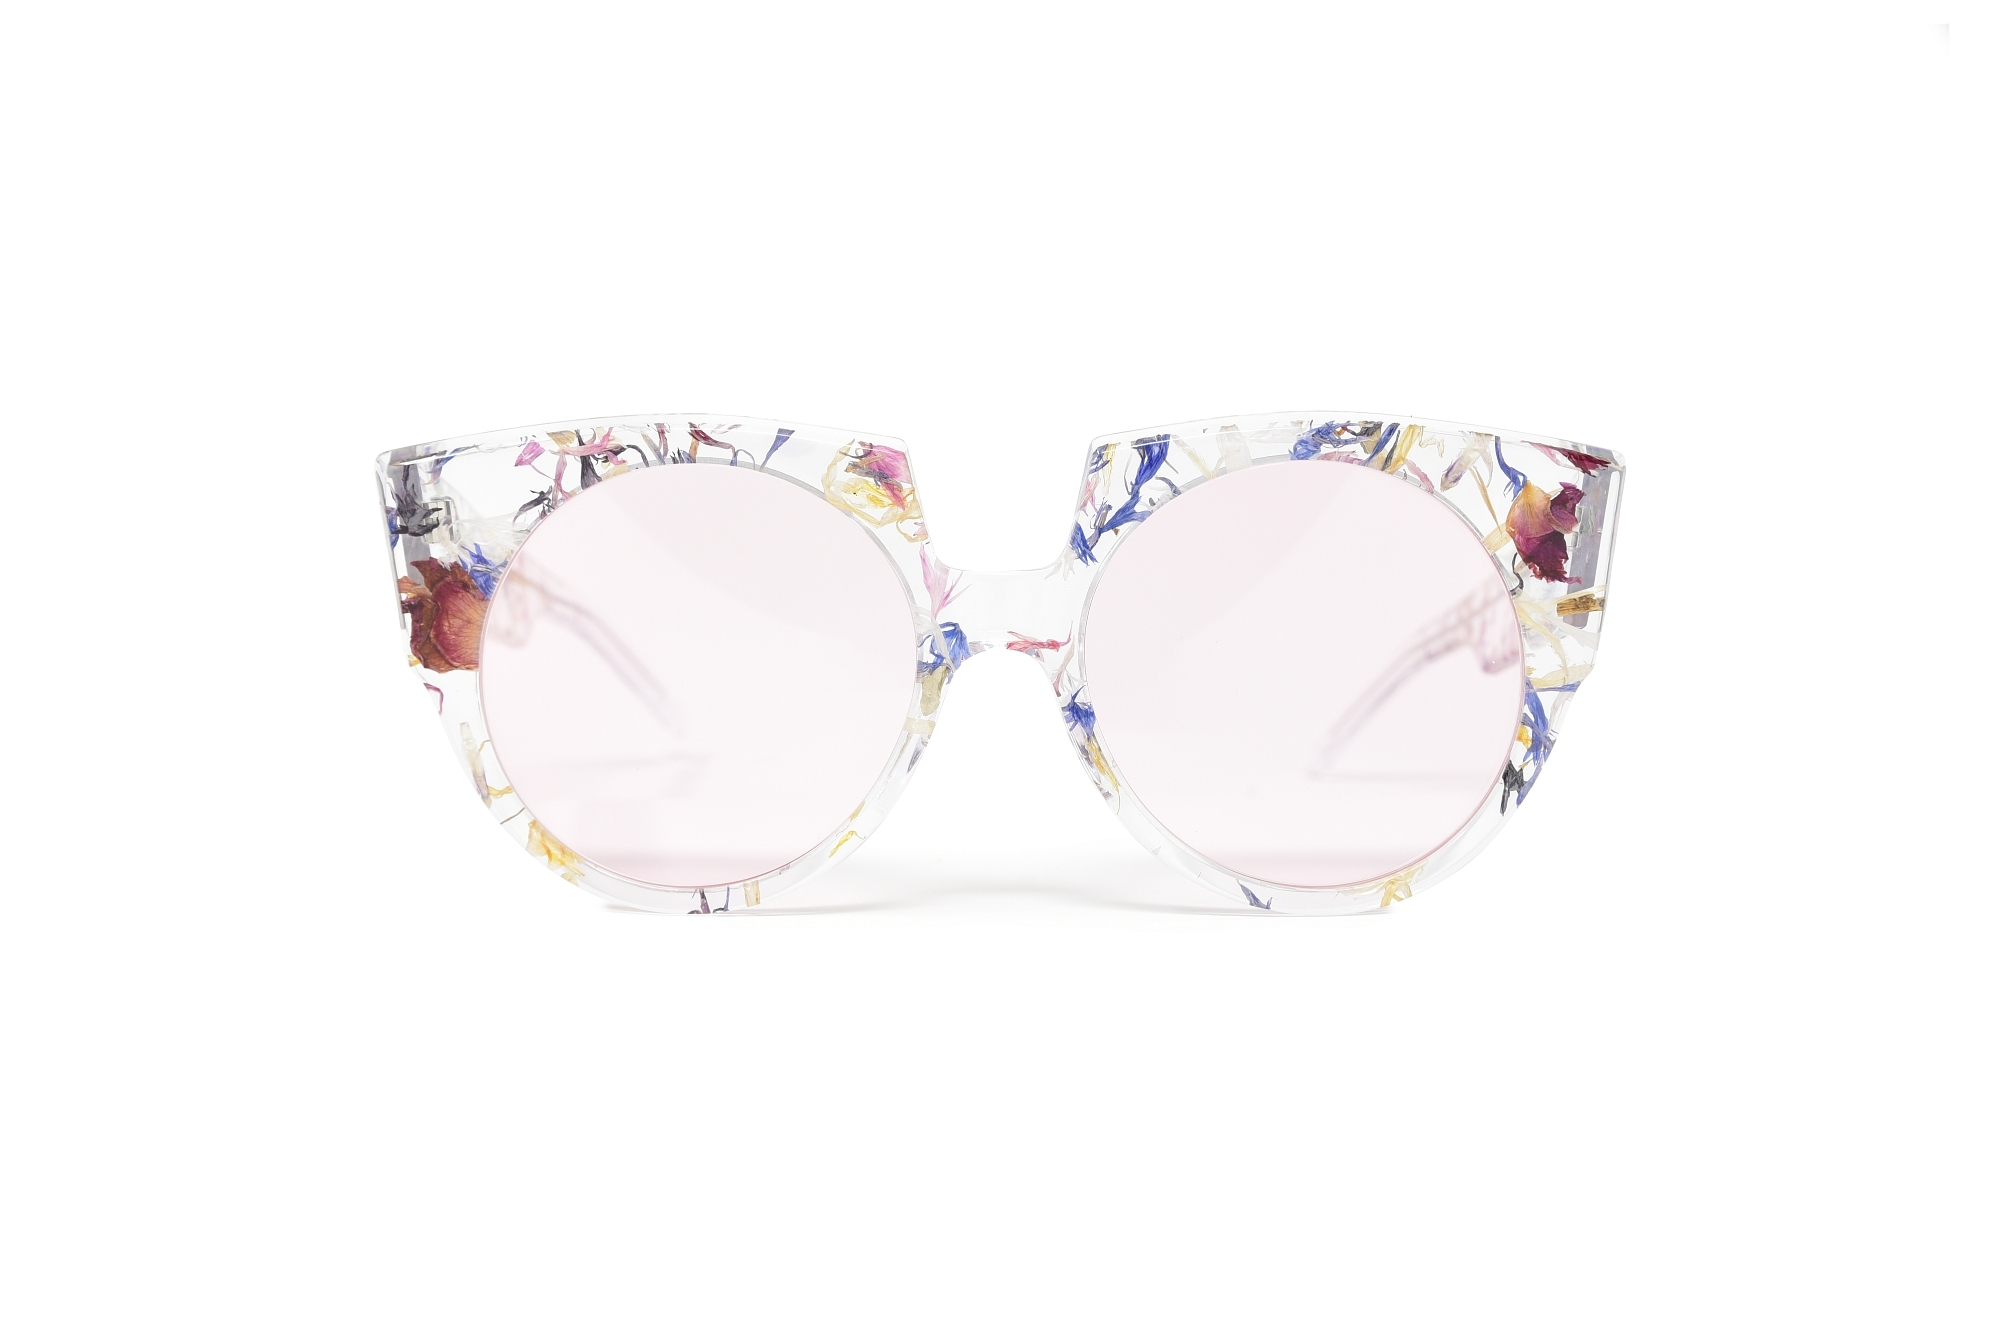 Occhiali CLEAR / DRIED FLOWERS - LENS: LIGHT PINK